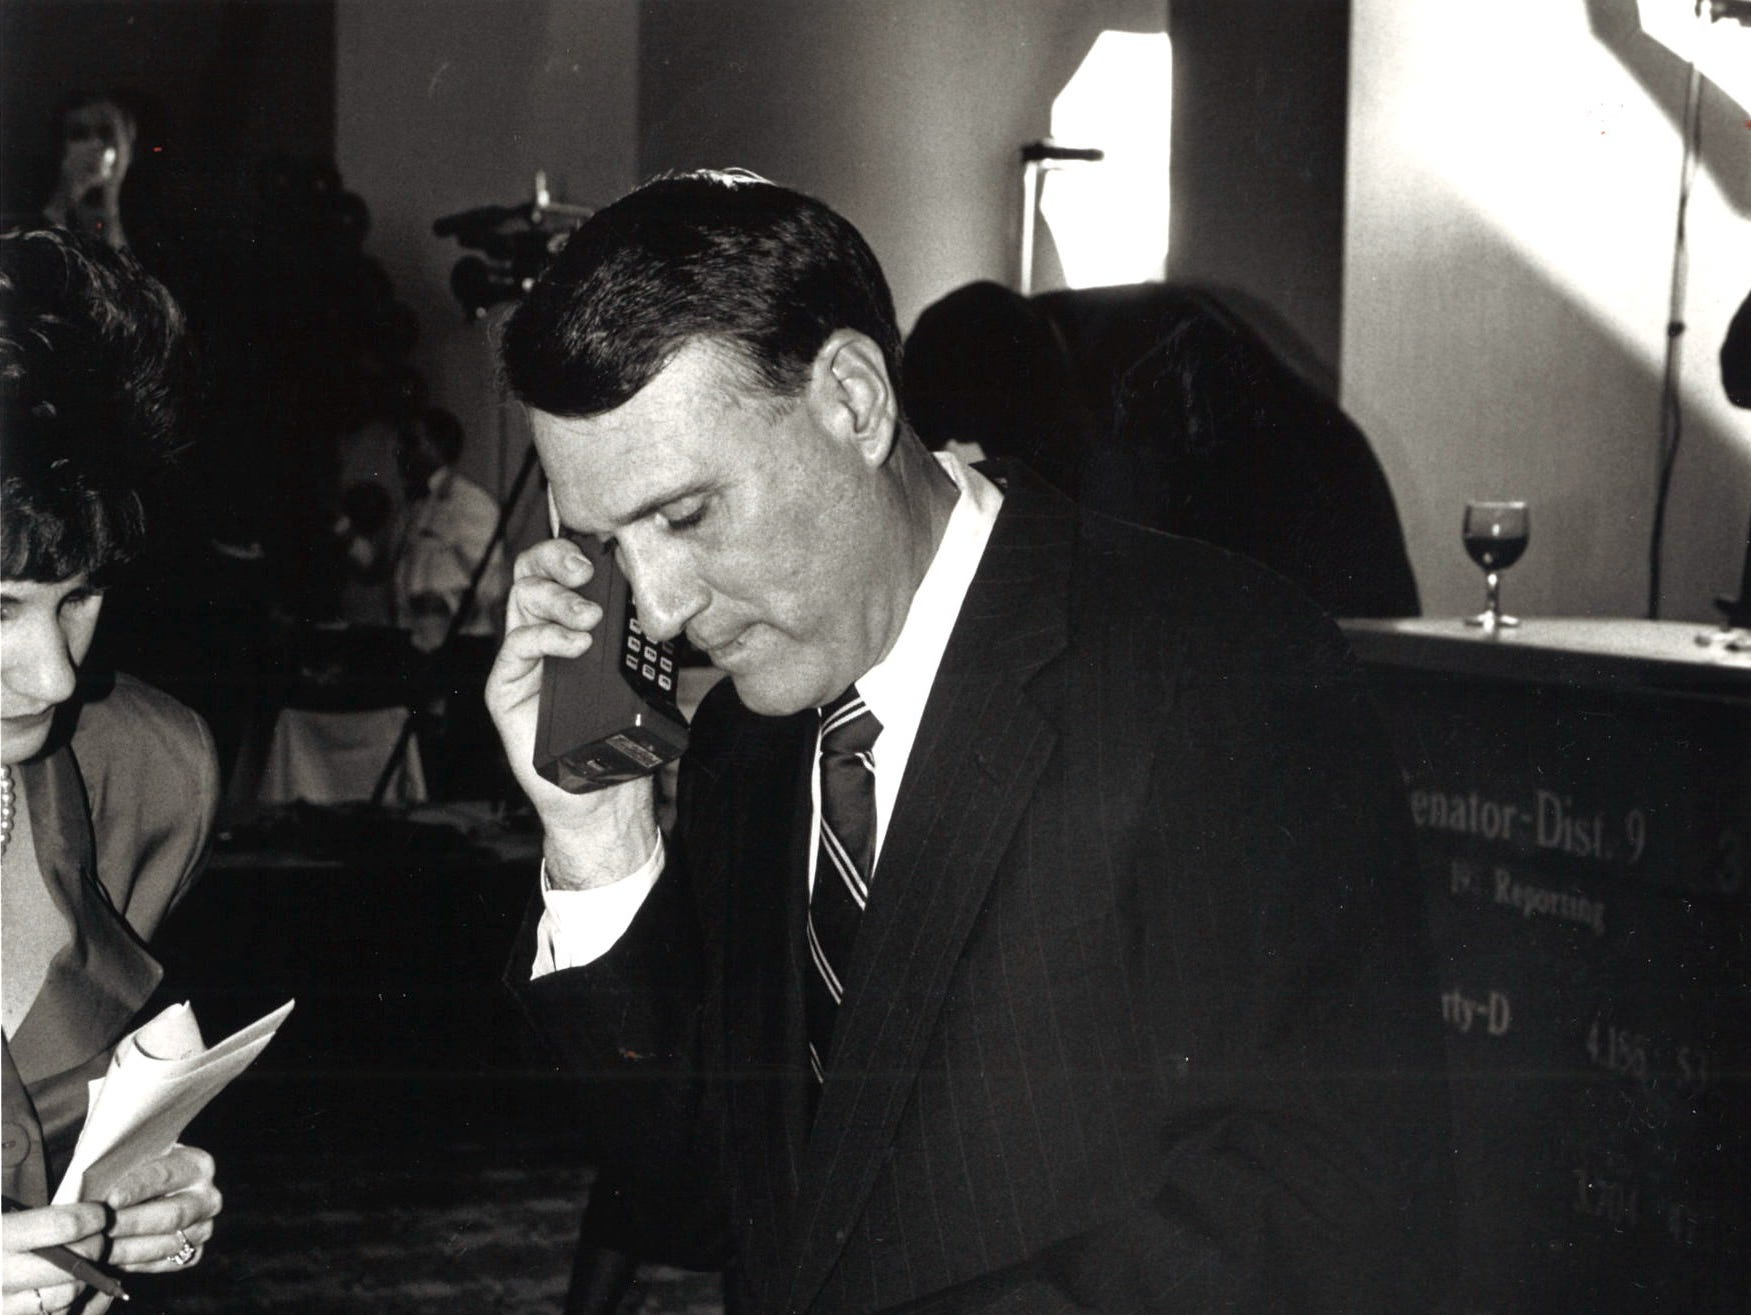 Jon Kyl at a local hotel calling for updates on Election Night, Nov. 8, 1990.